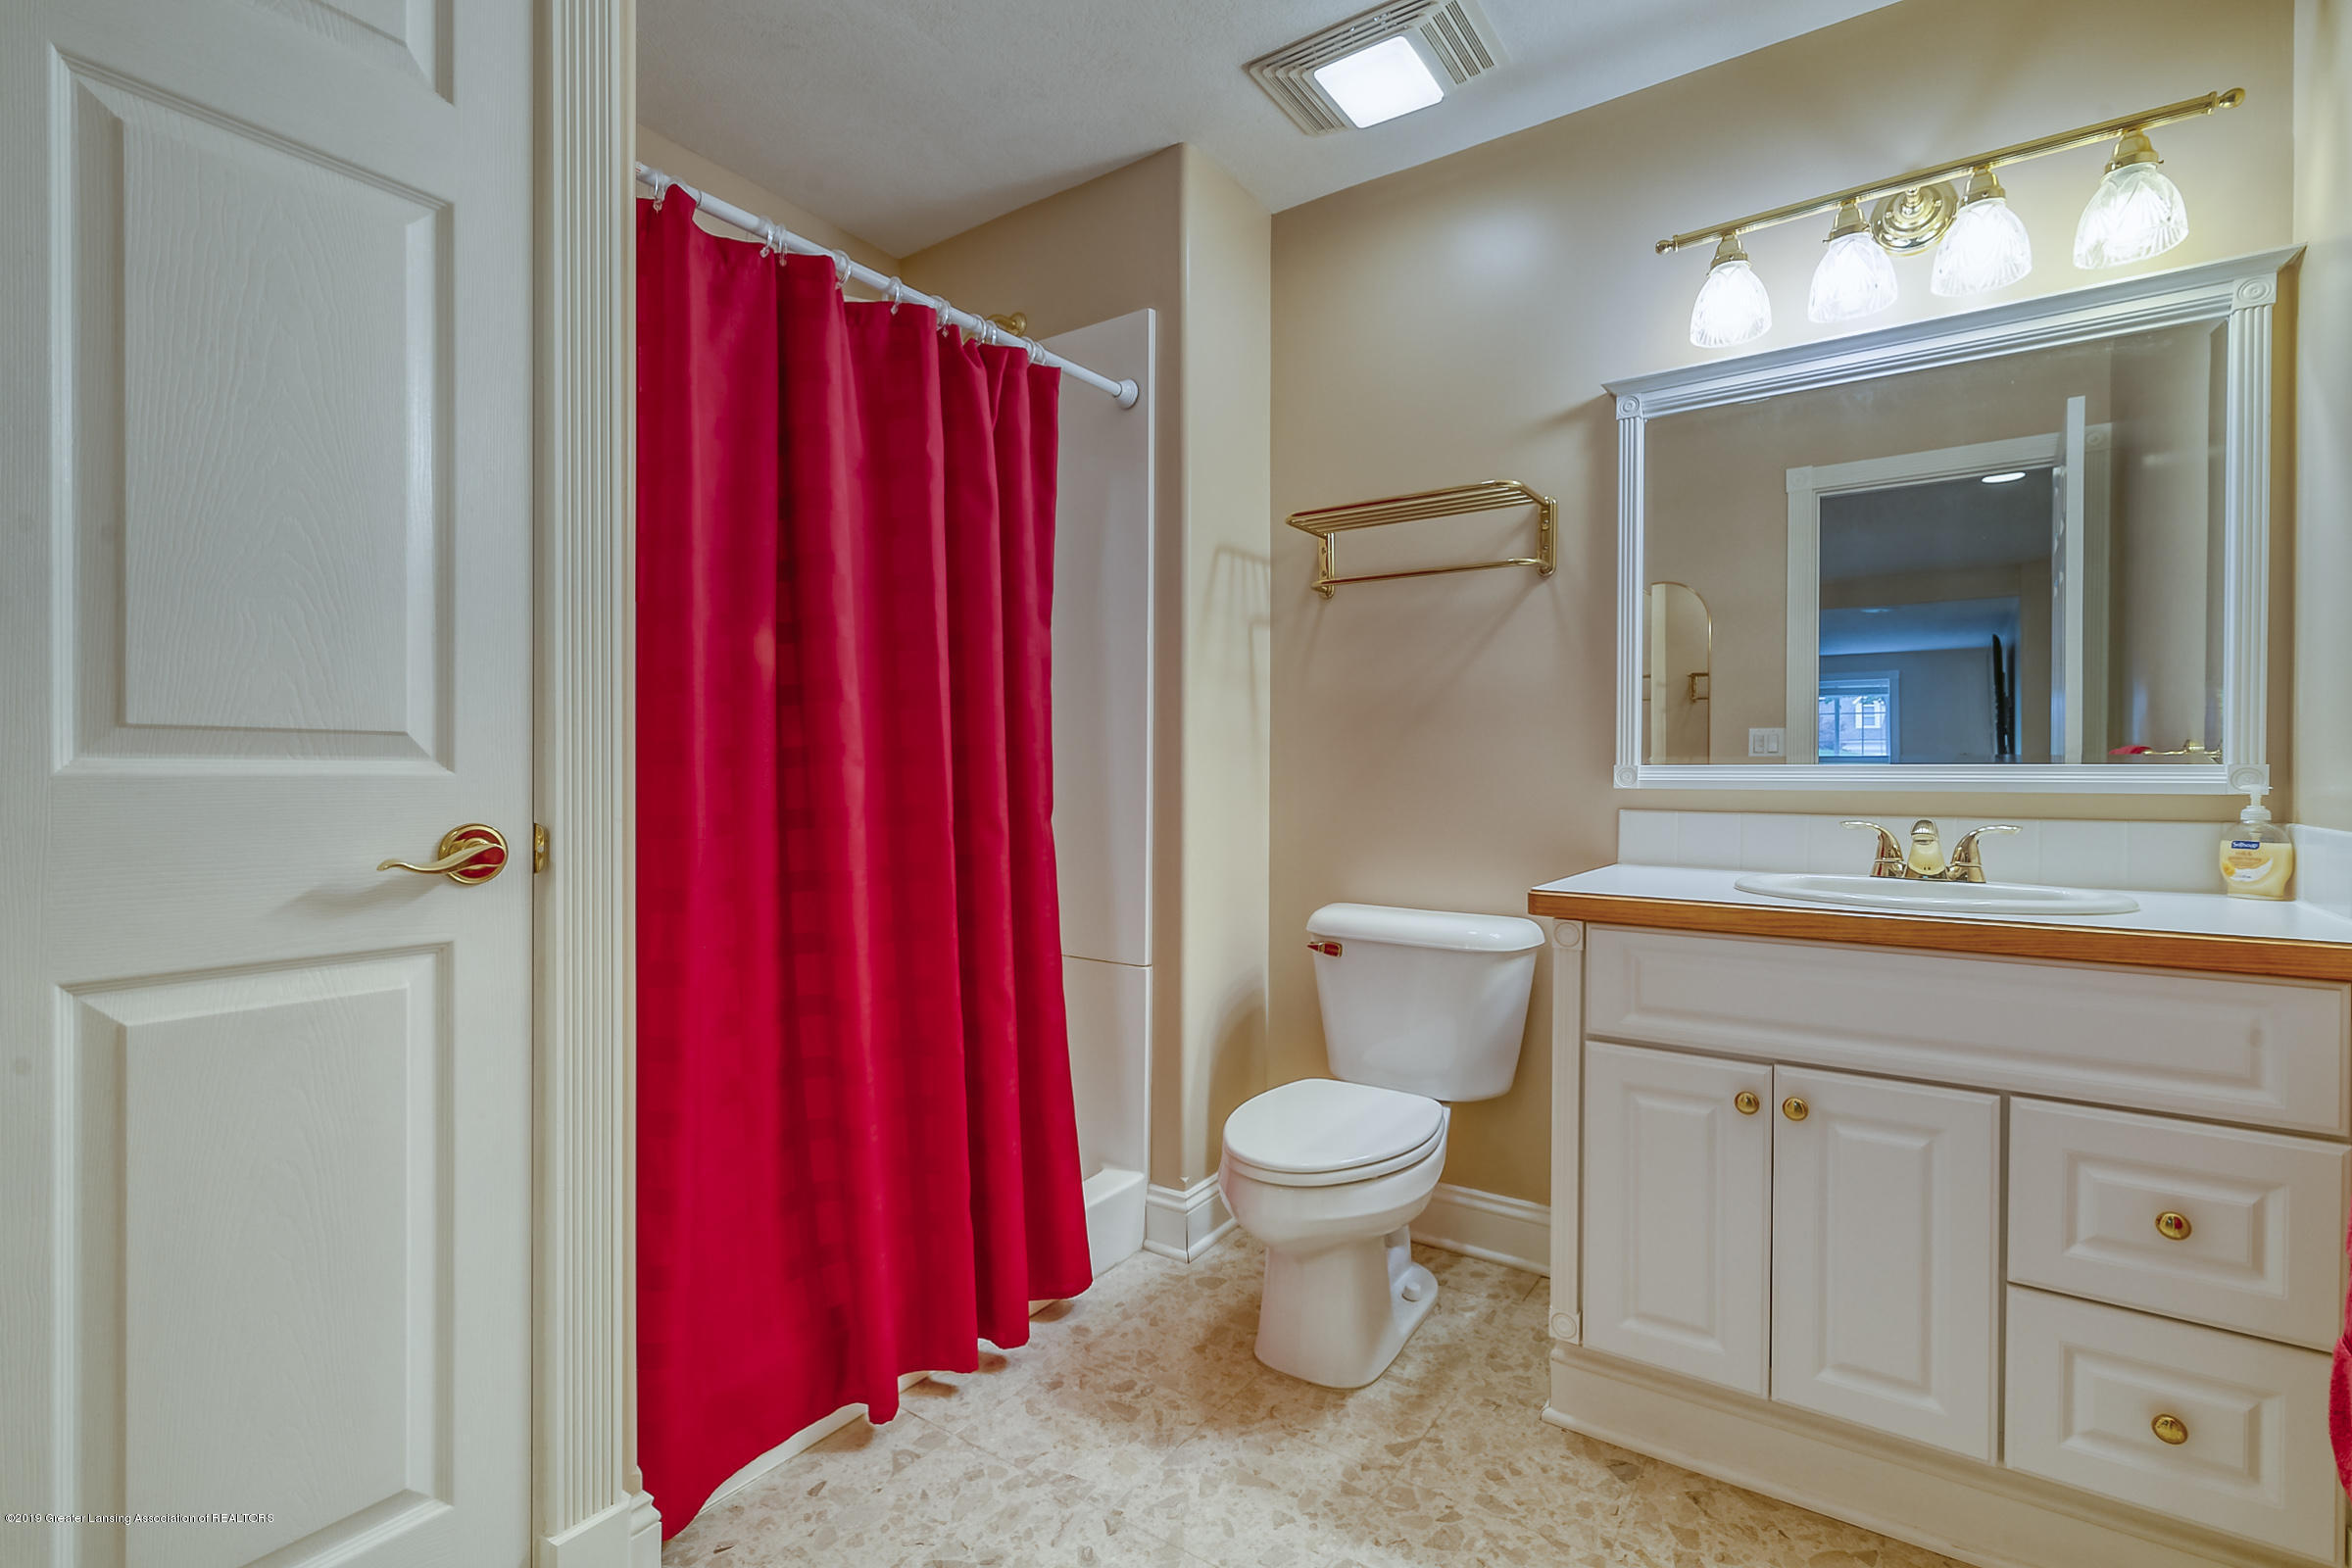 1110 Candela Ln - FULL BATHROM - 32